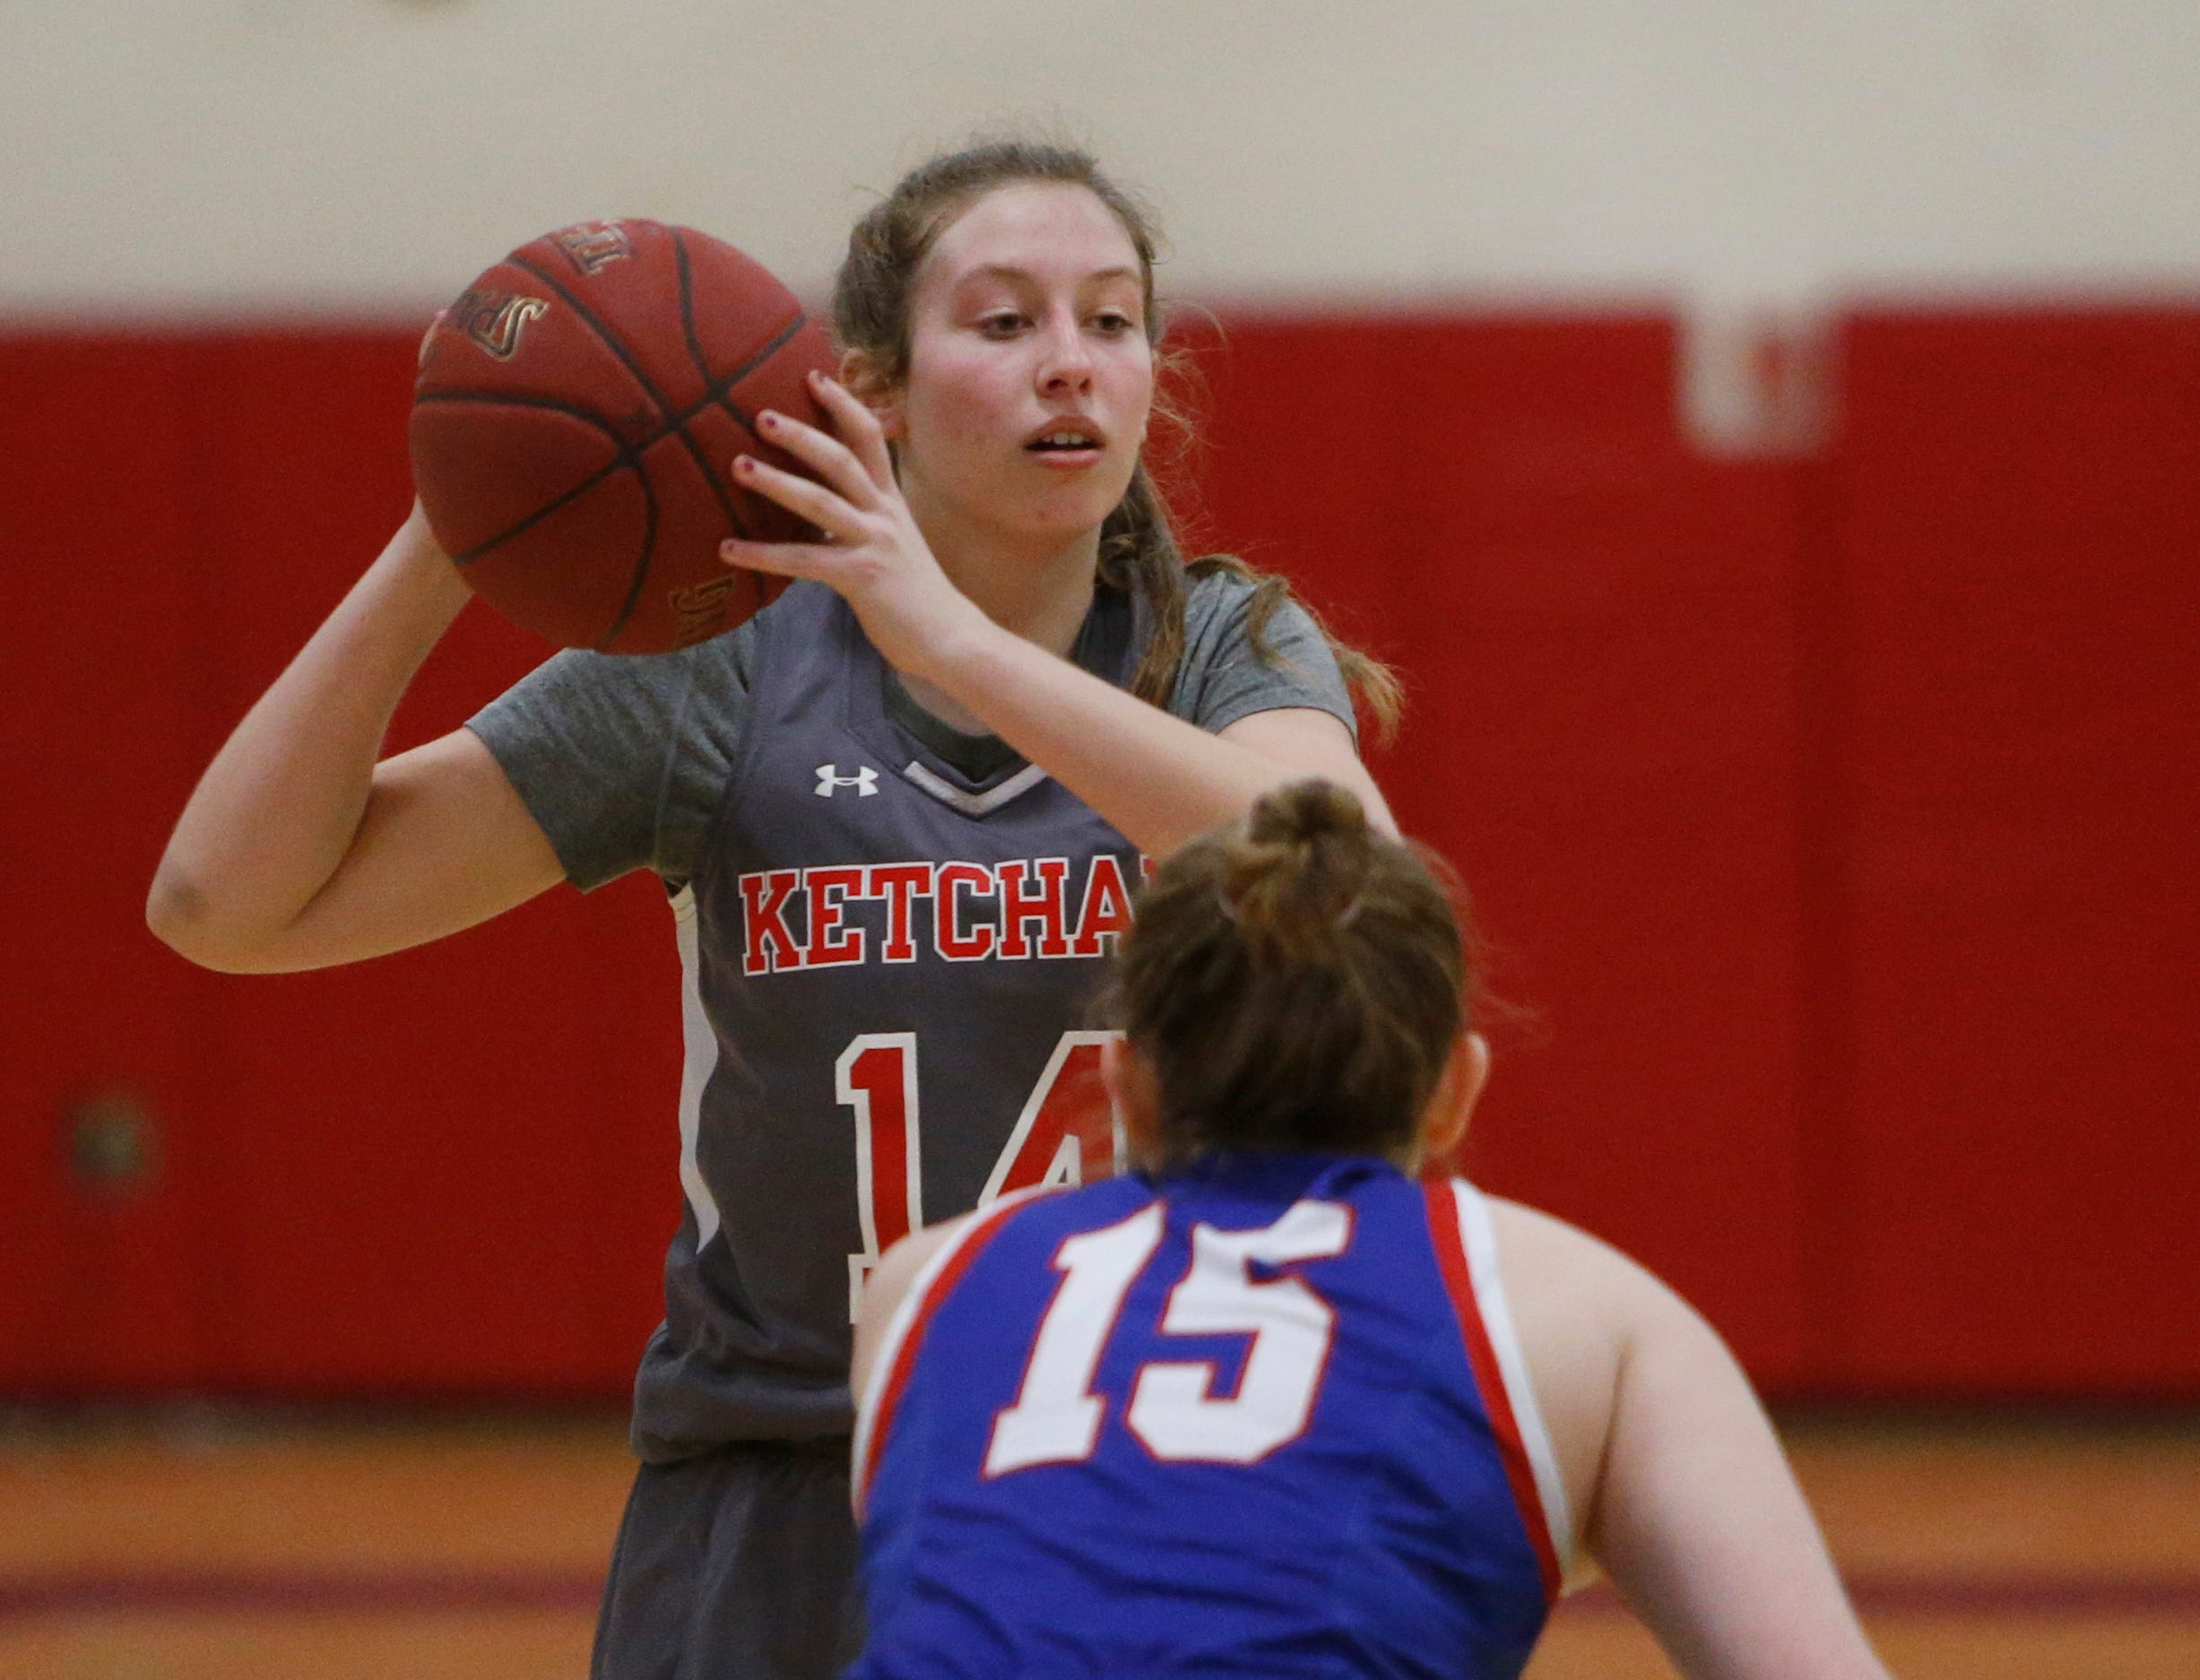 Ketcham's Meg Nardelli looks to pass the ball as Carmel's Claire Cody covers her during Thursday's game on February 14, 2019.